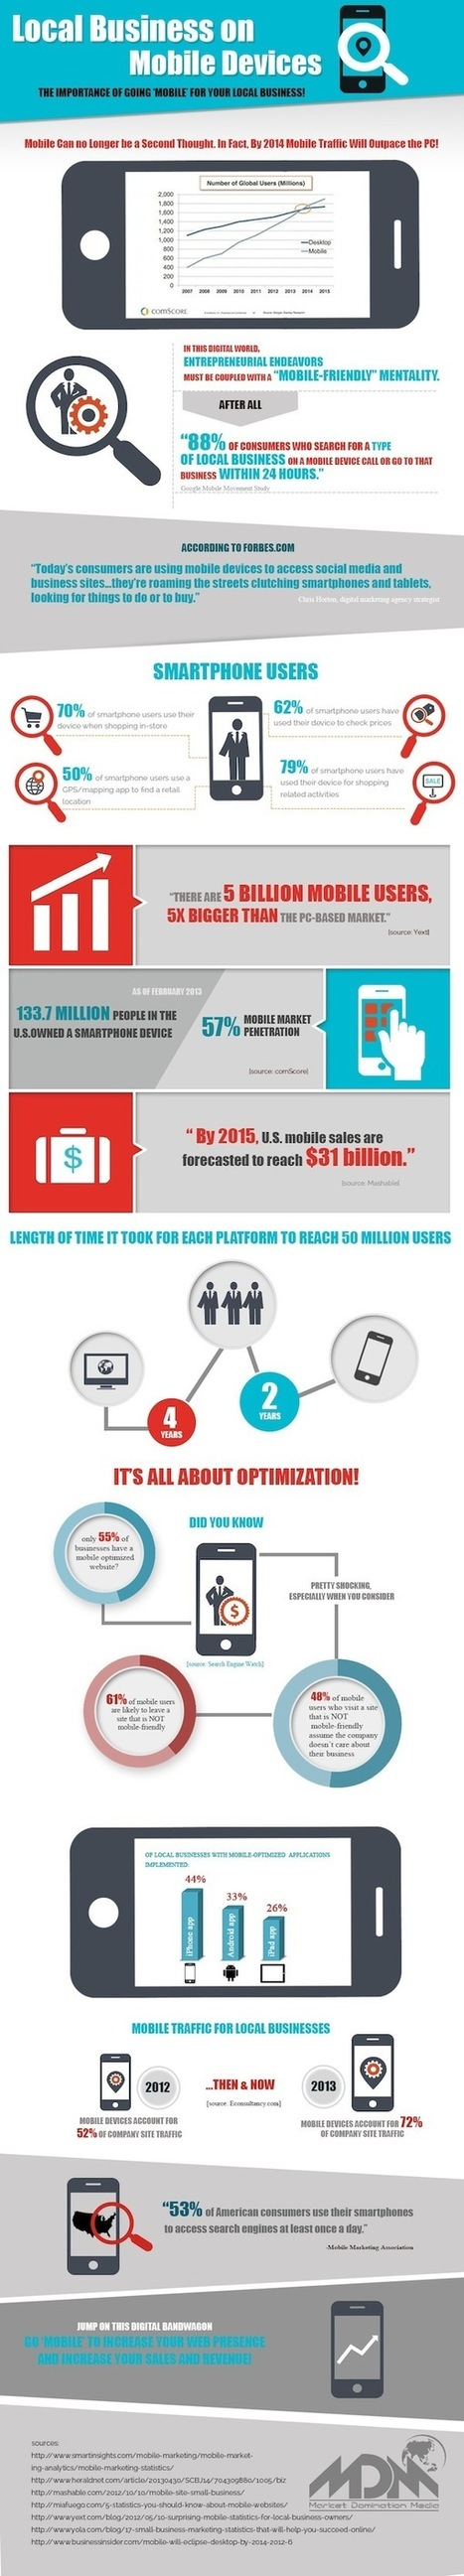 Why Local Businesses Need to be Found on Mobile Devices [Infographic]   Social Media   Scoop.it